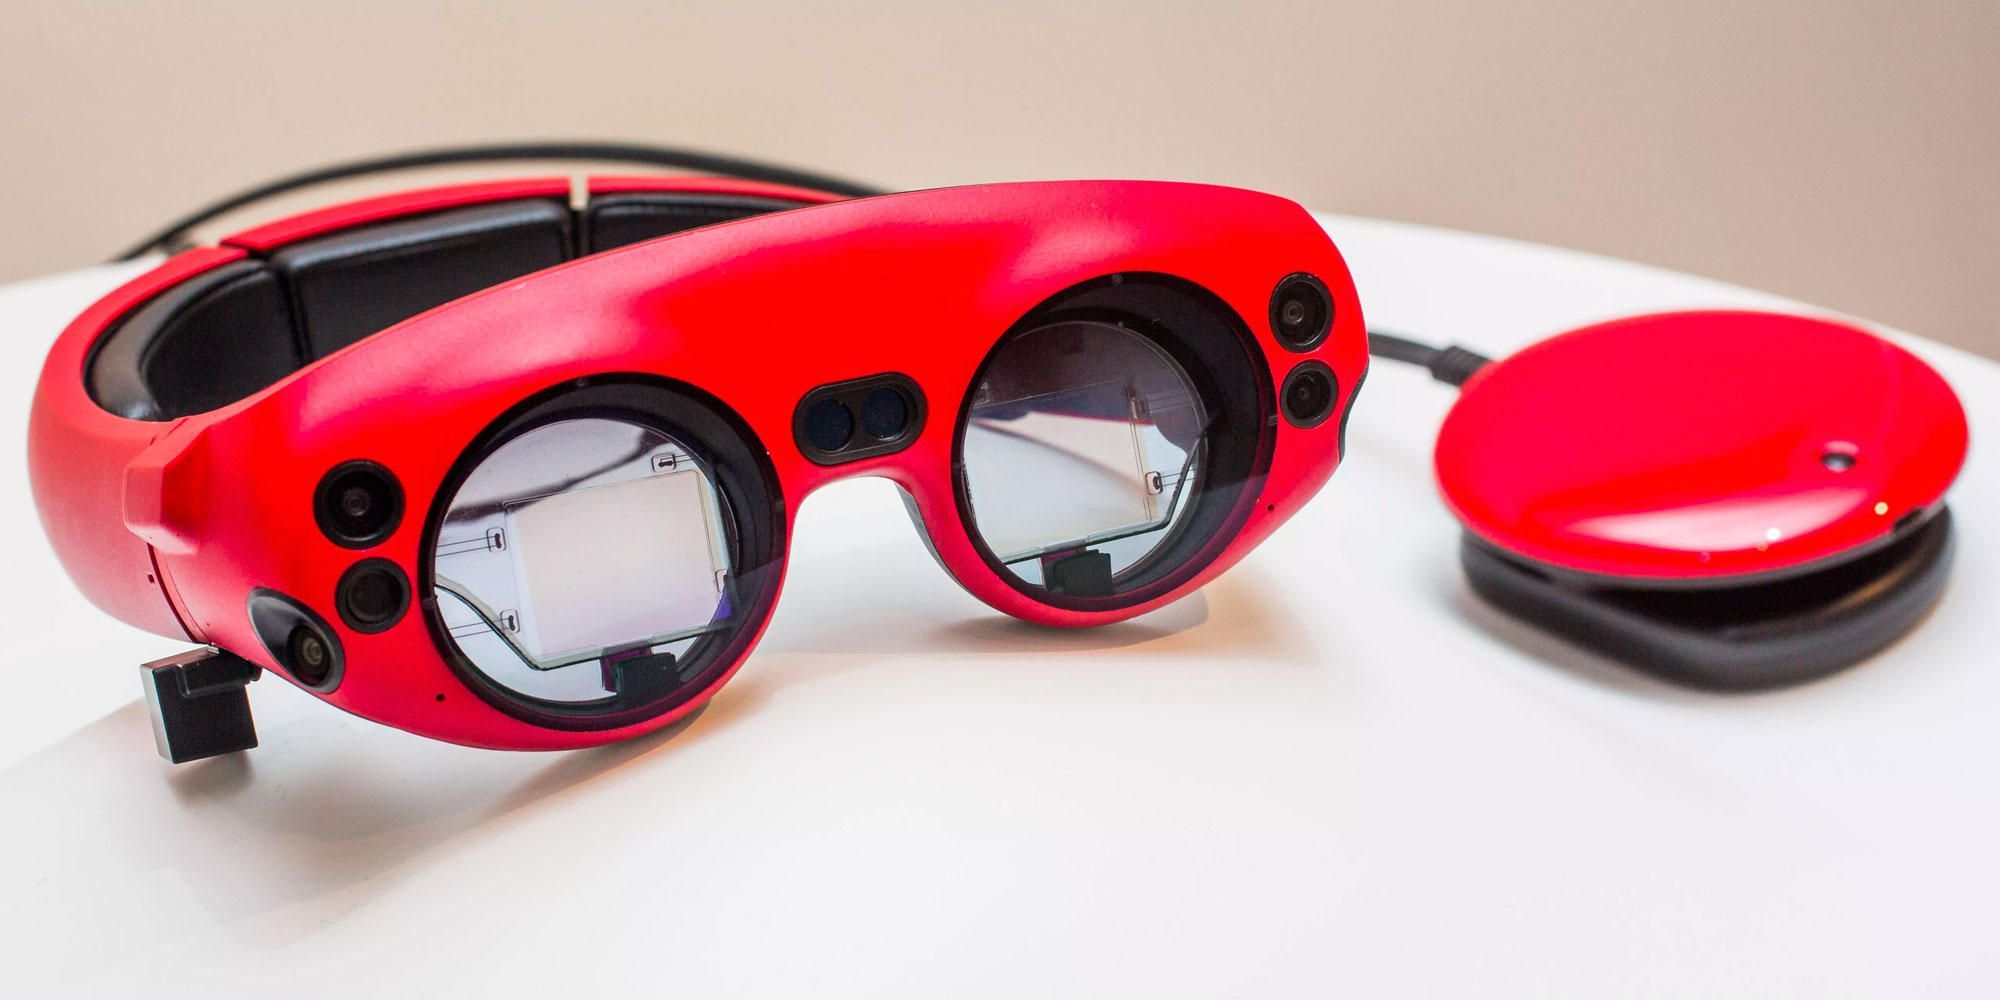 The Magic Leap One AR headset is out now for 2295 but not